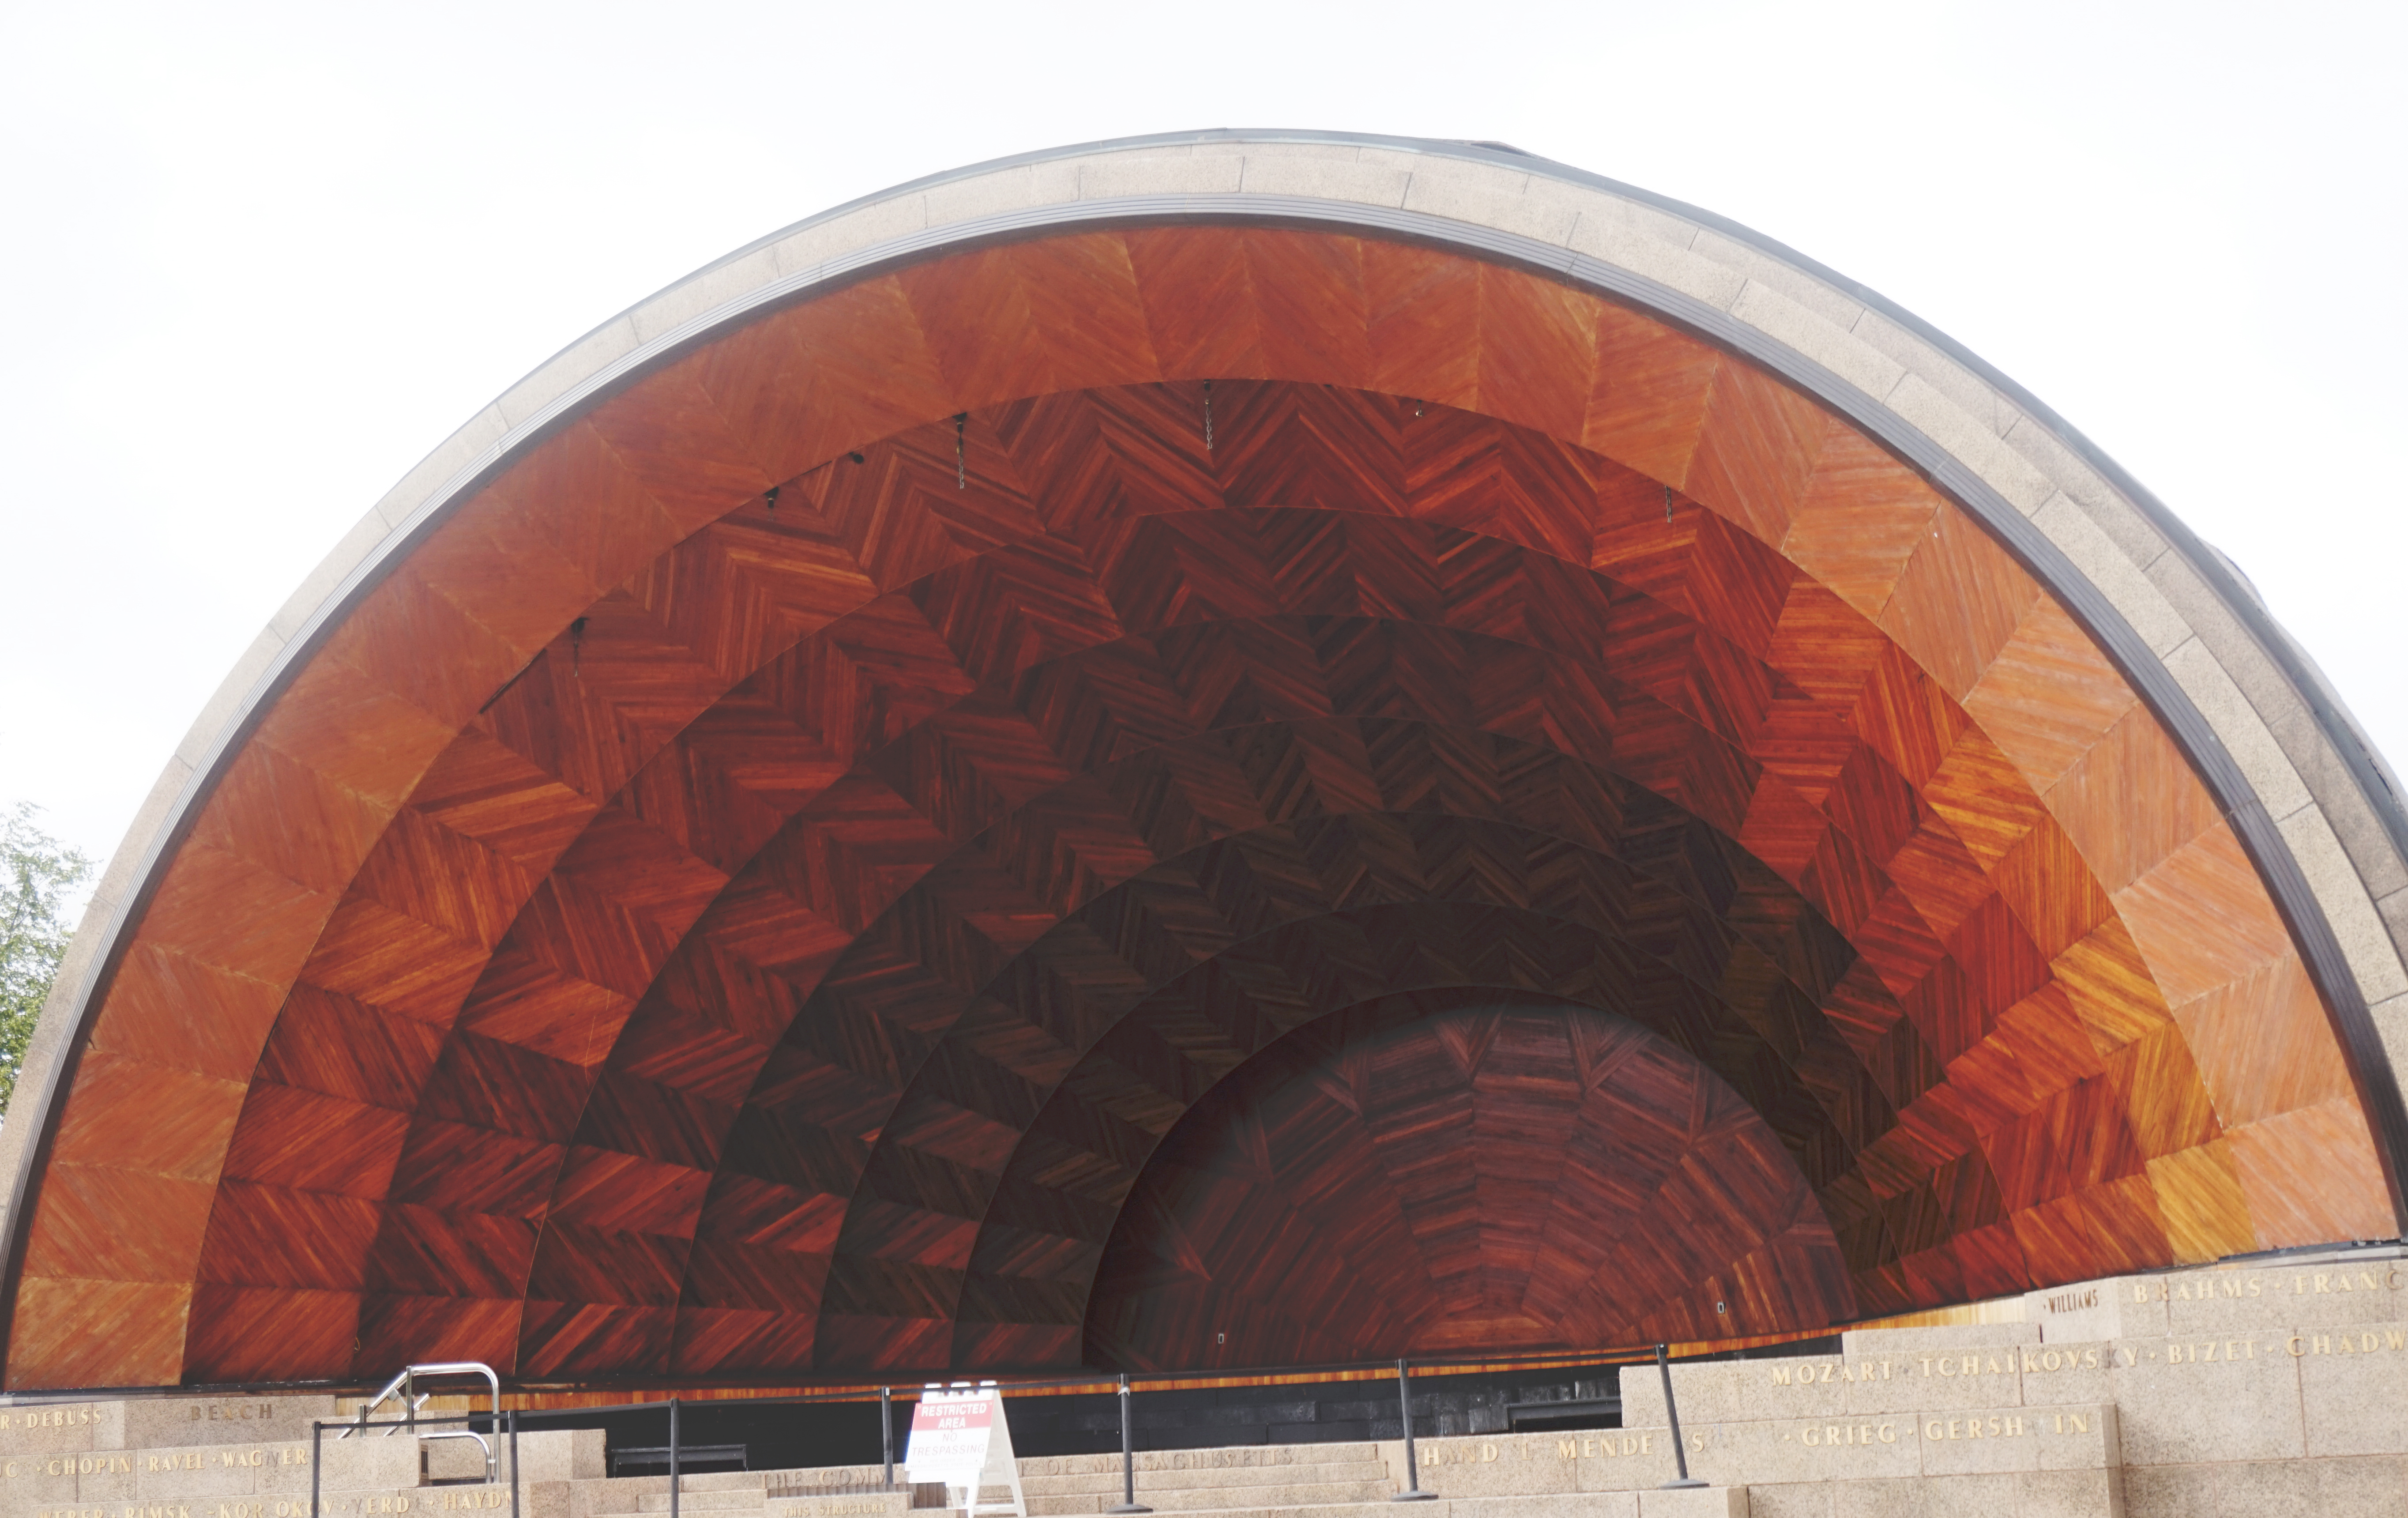 Hatch Shell. Typically used for concerts and outdoor activities